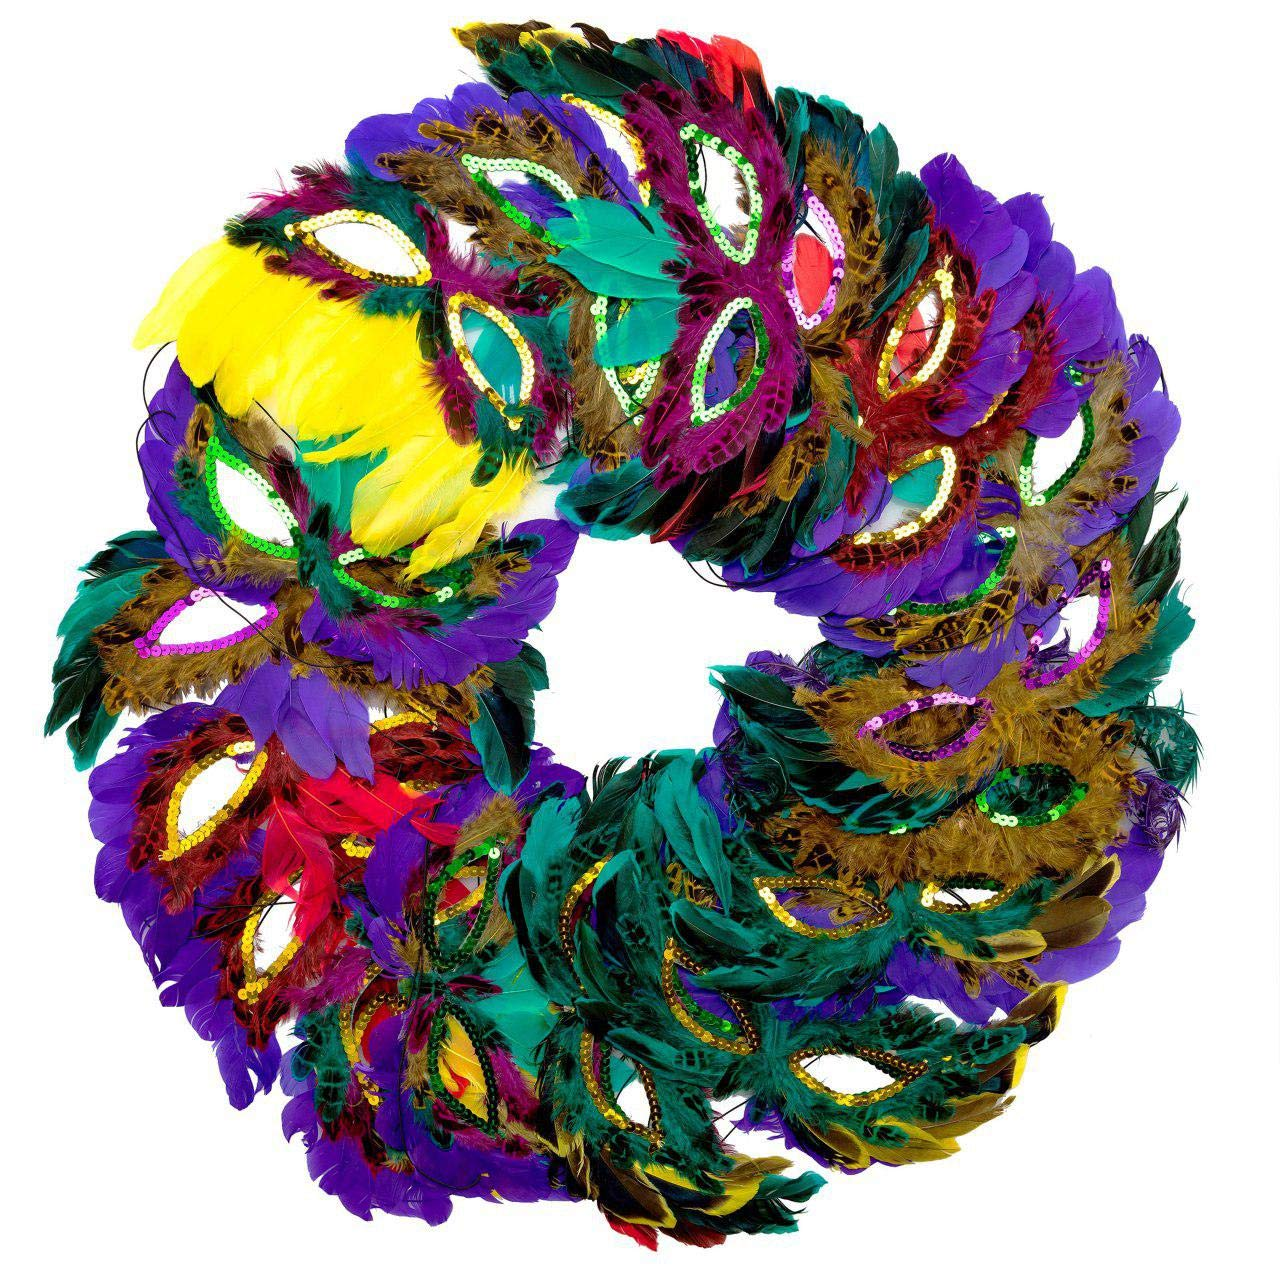 Toy Grid Bulk Pack of 50 Fantasy Feather Masks, Mardi Gras Party Favors - Masquerade Mask Feathers, 12 Assorted Styles